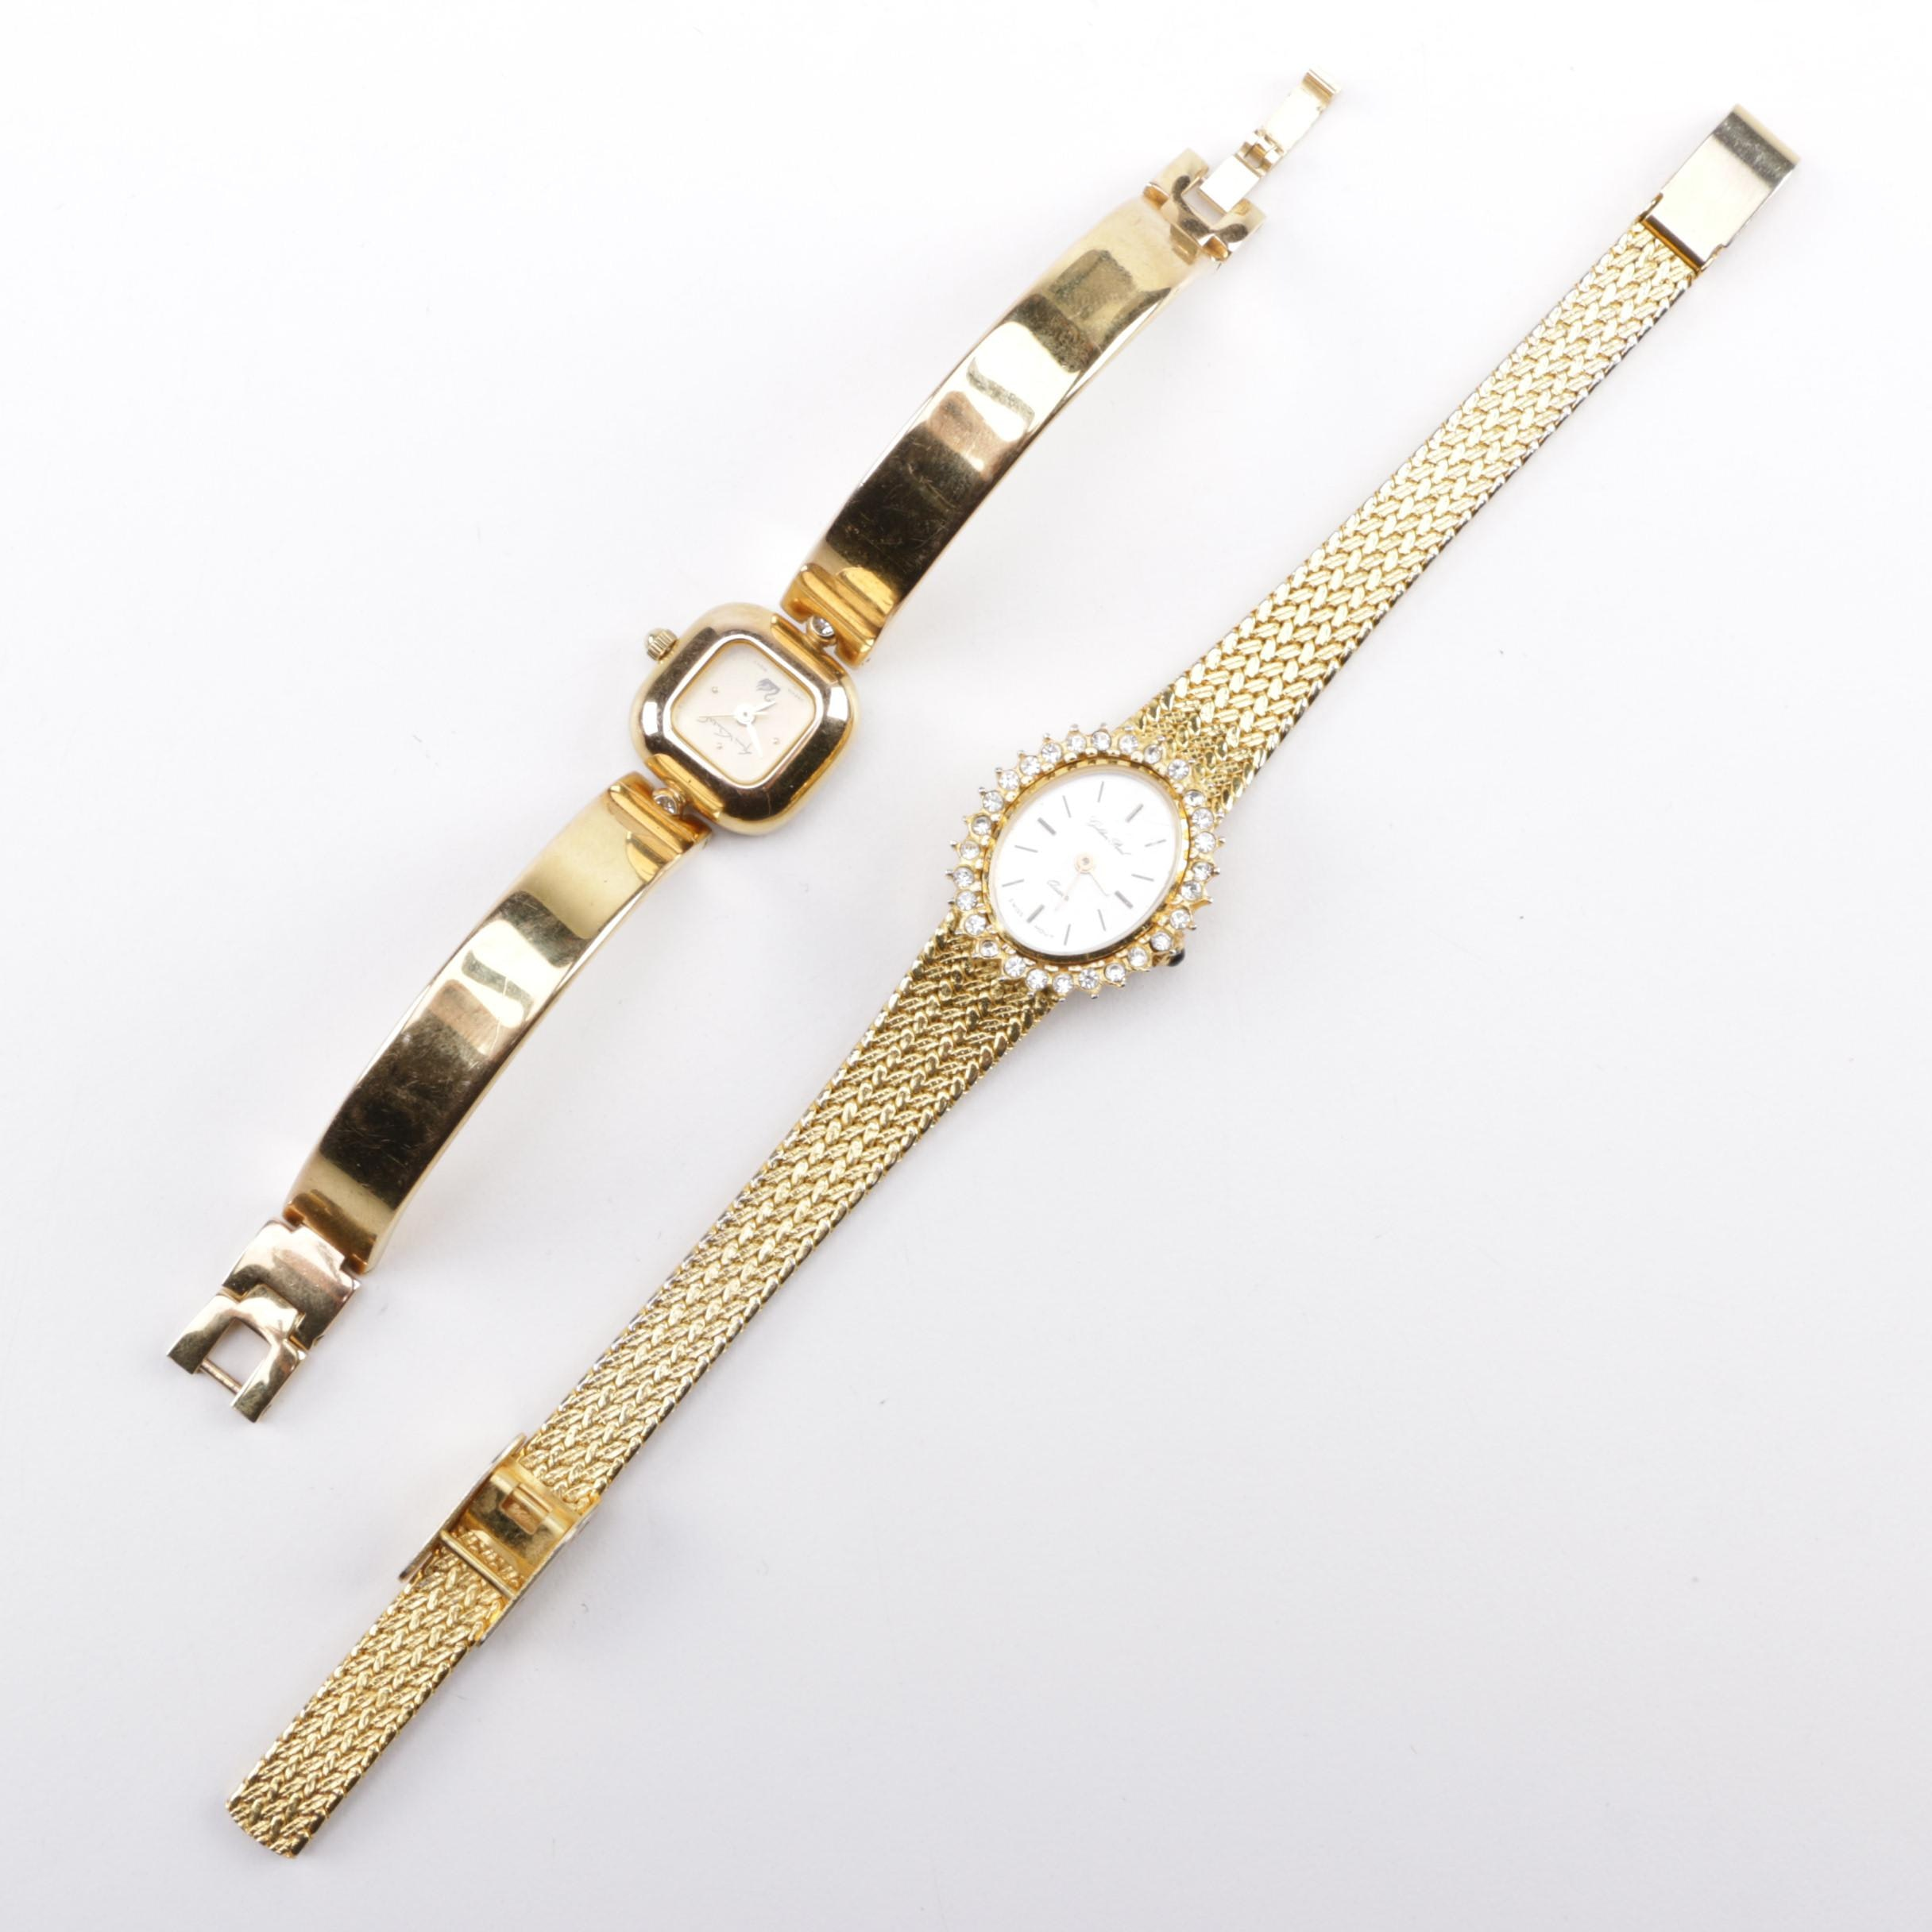 Gold Tone Wristwatches